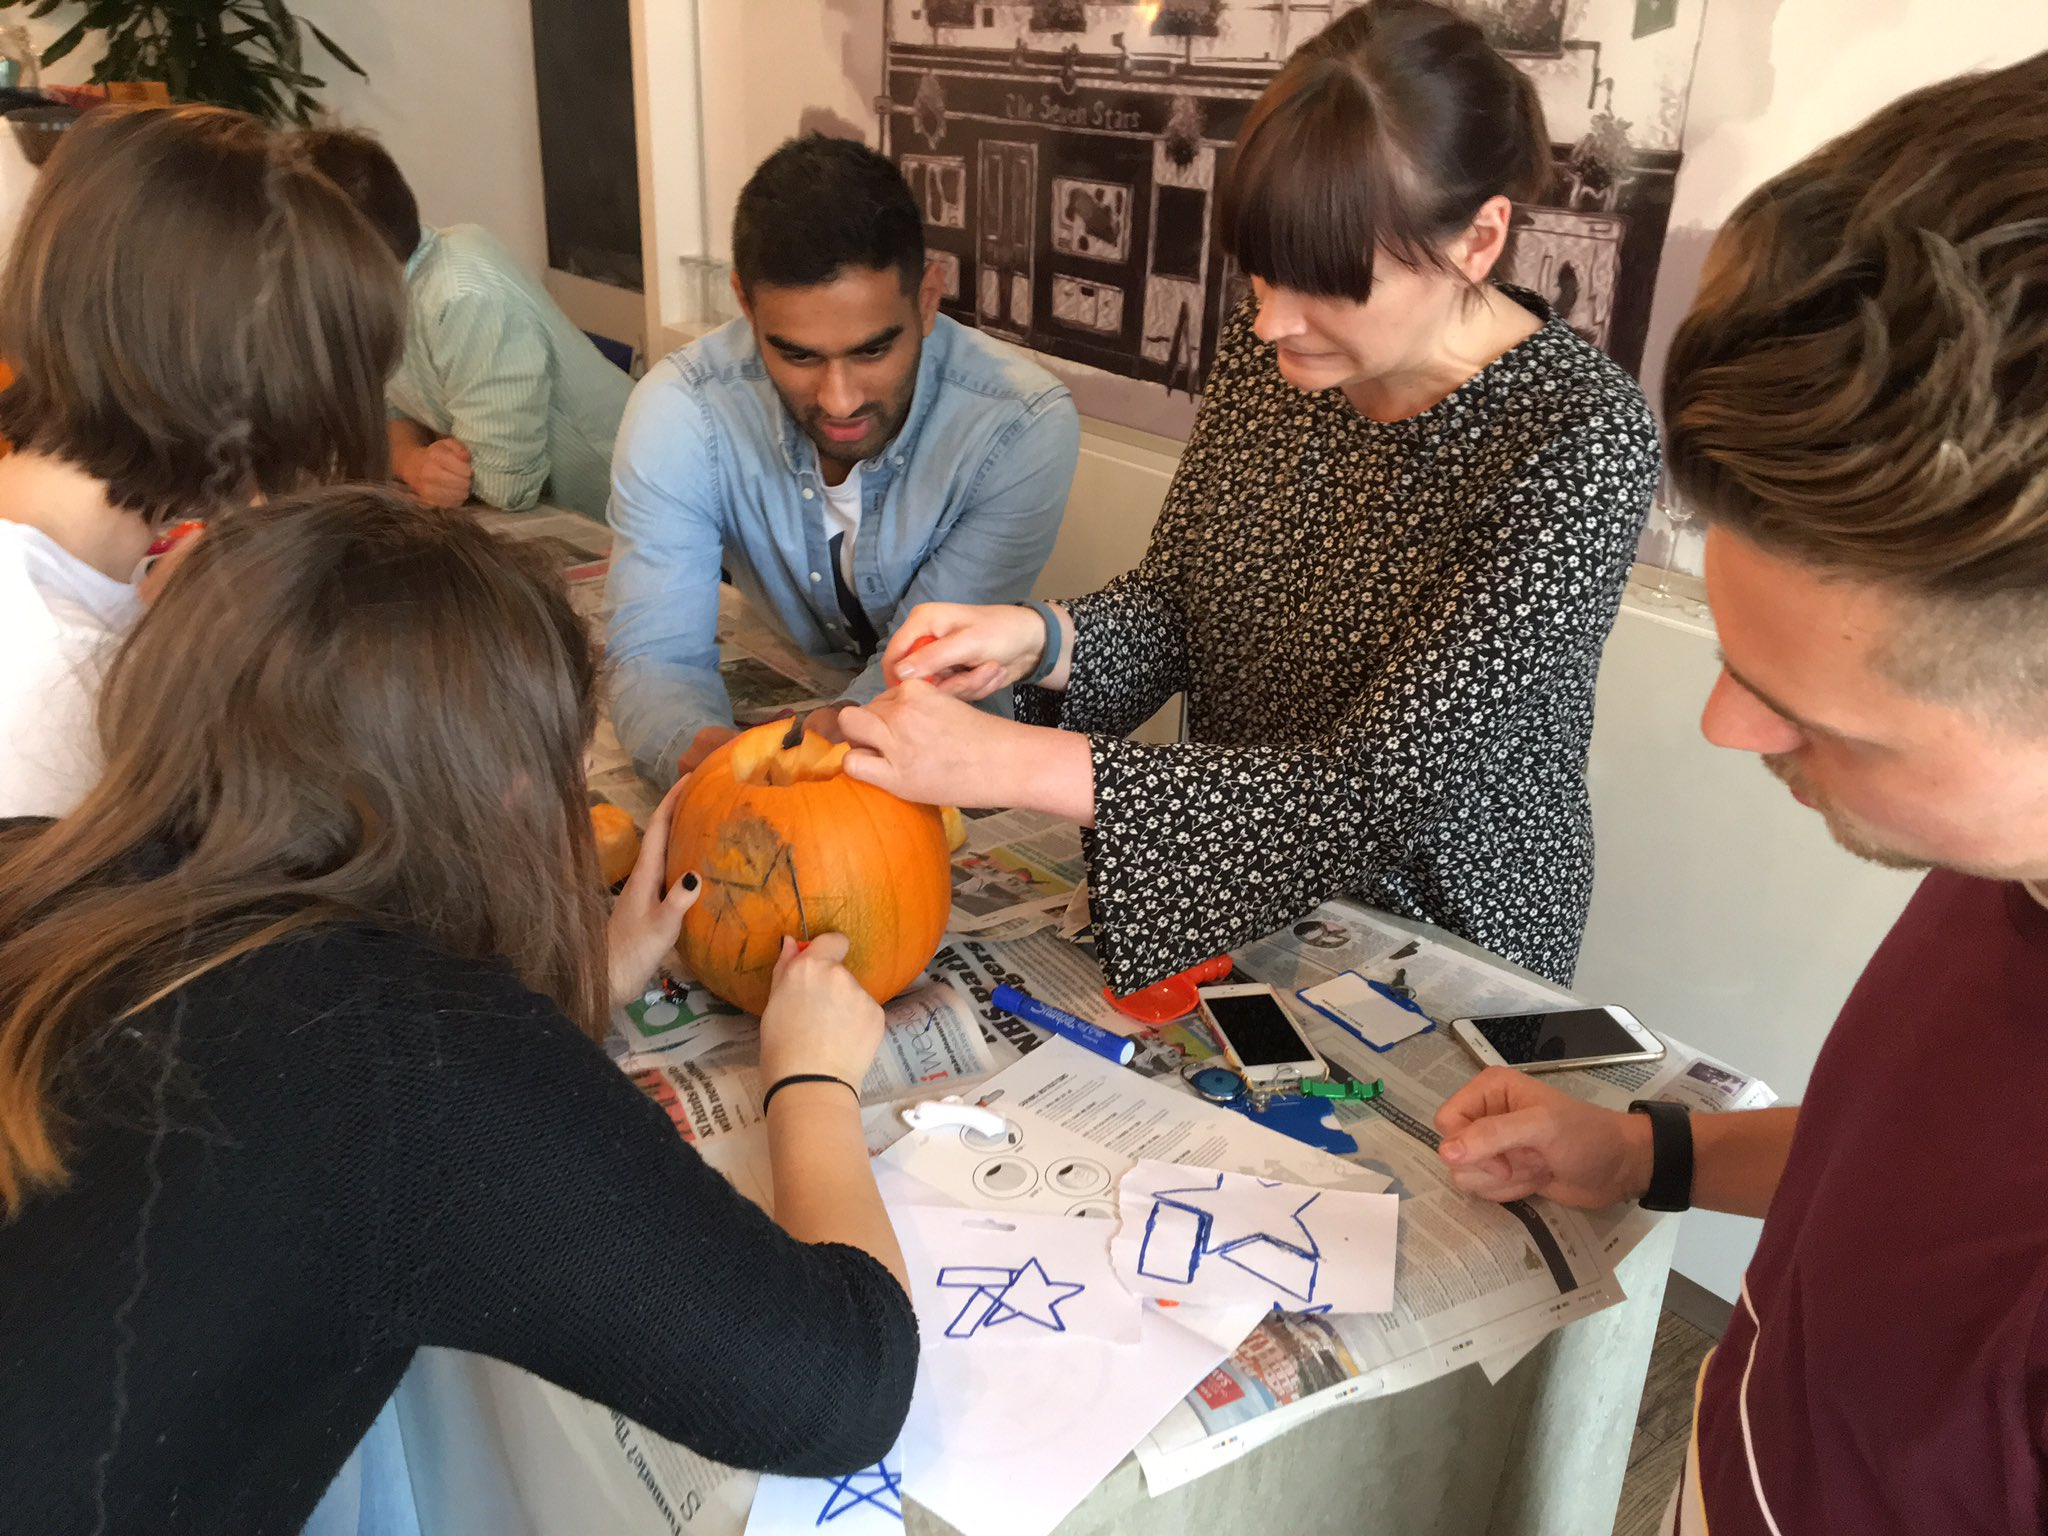 How many employees of the7stars does it take to carve a pumpkin? At least five, apparently ... 🎃 #spooktacular https://t.co/UkmbE1P0q6